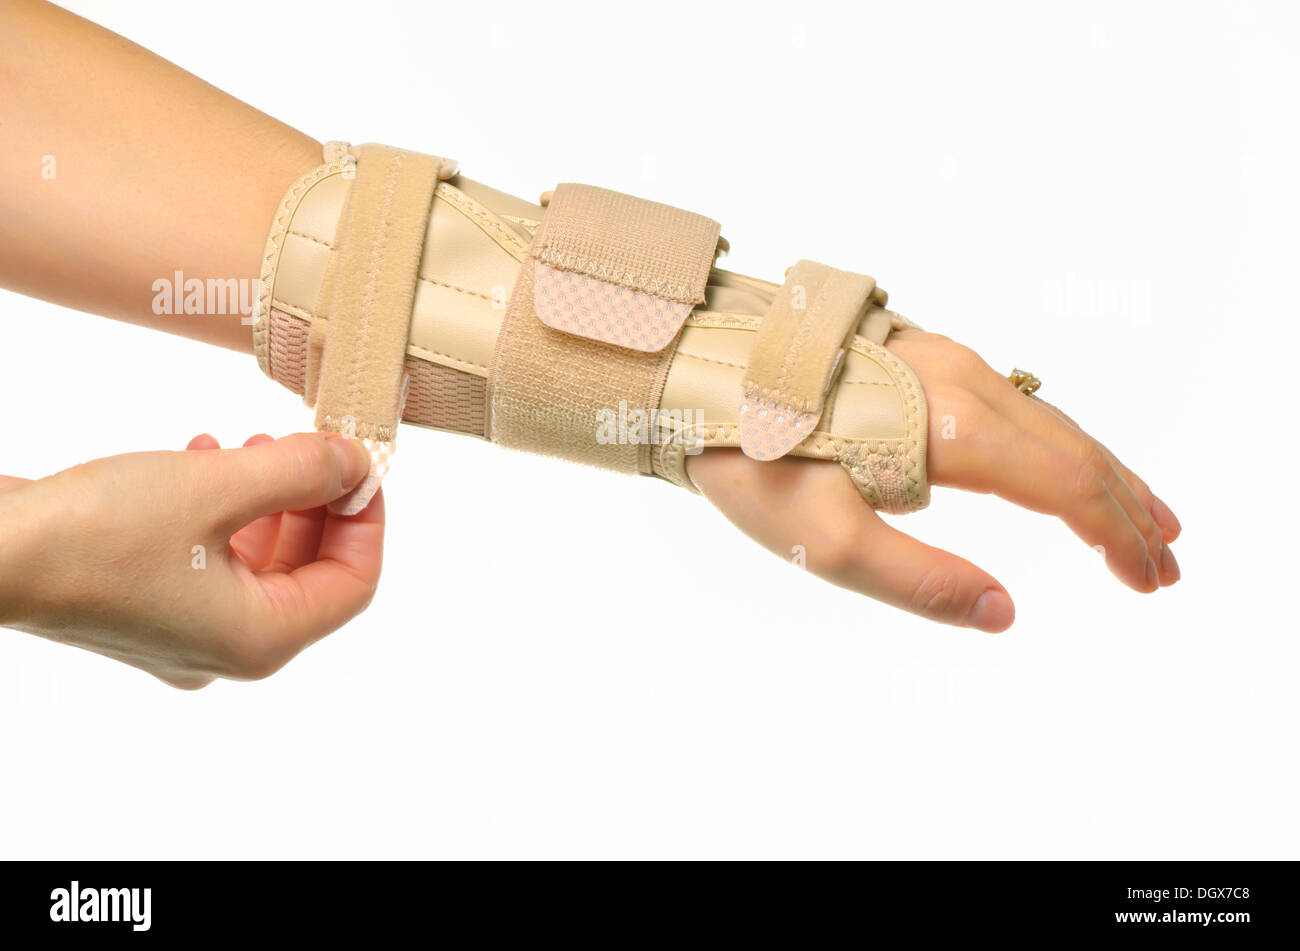 hand with a wrist brace isolated - Stock Image